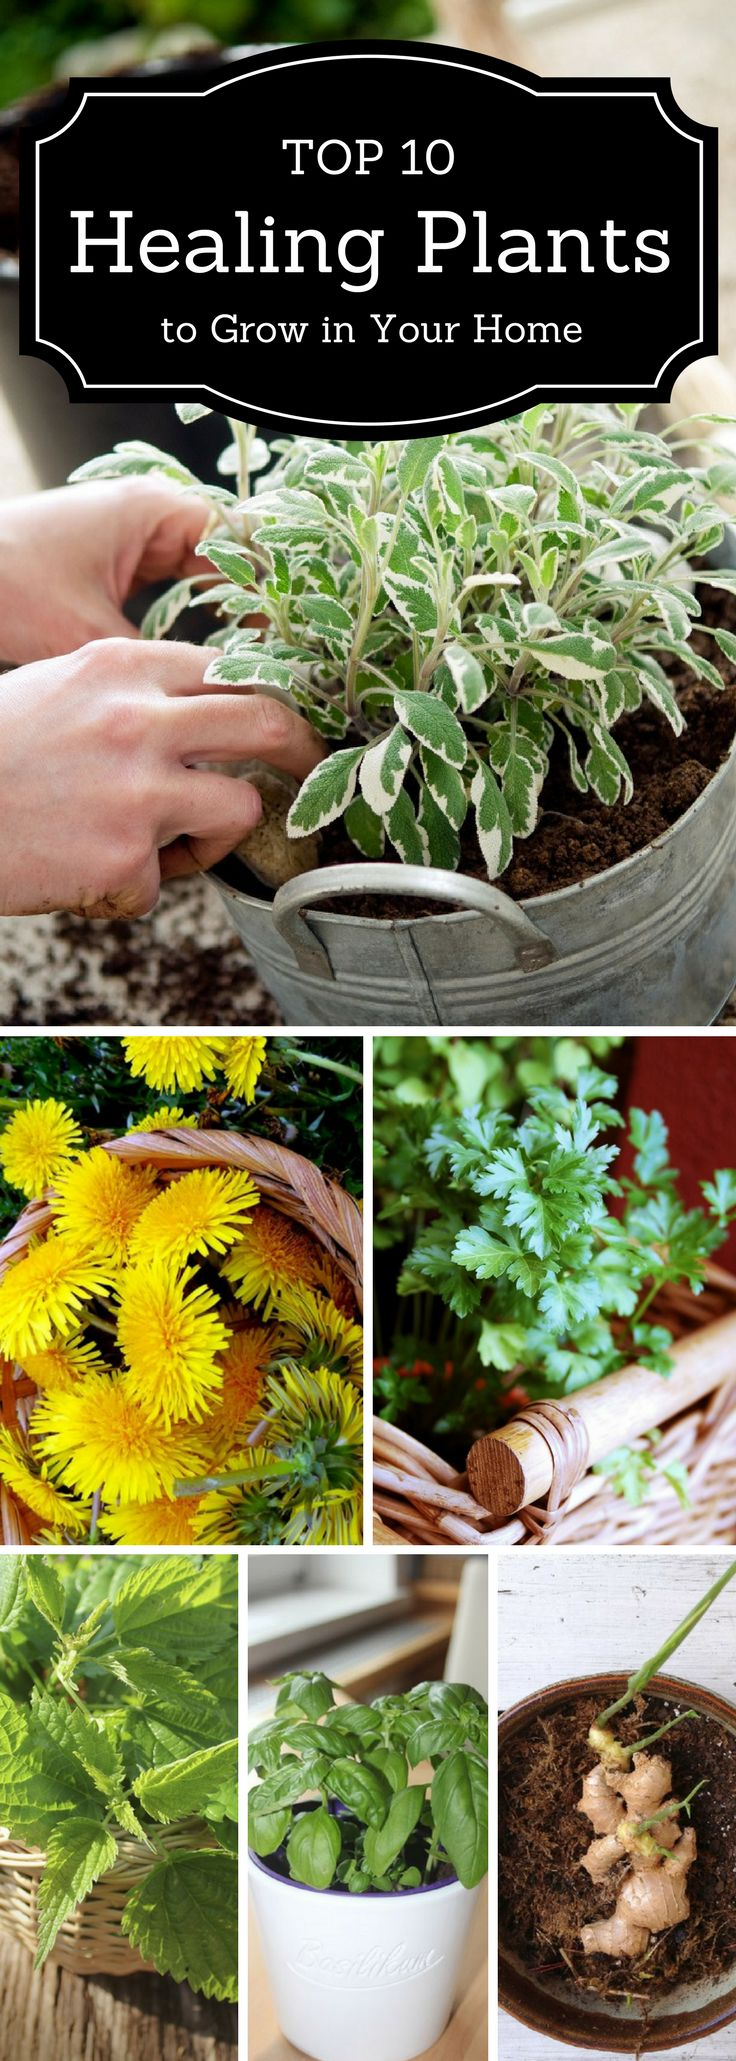 There are so many medicinal vegetables, fruits and herbs to choose from. Our list will definitely make you choose which are the best for you and which will thrive best in your home. Take a look